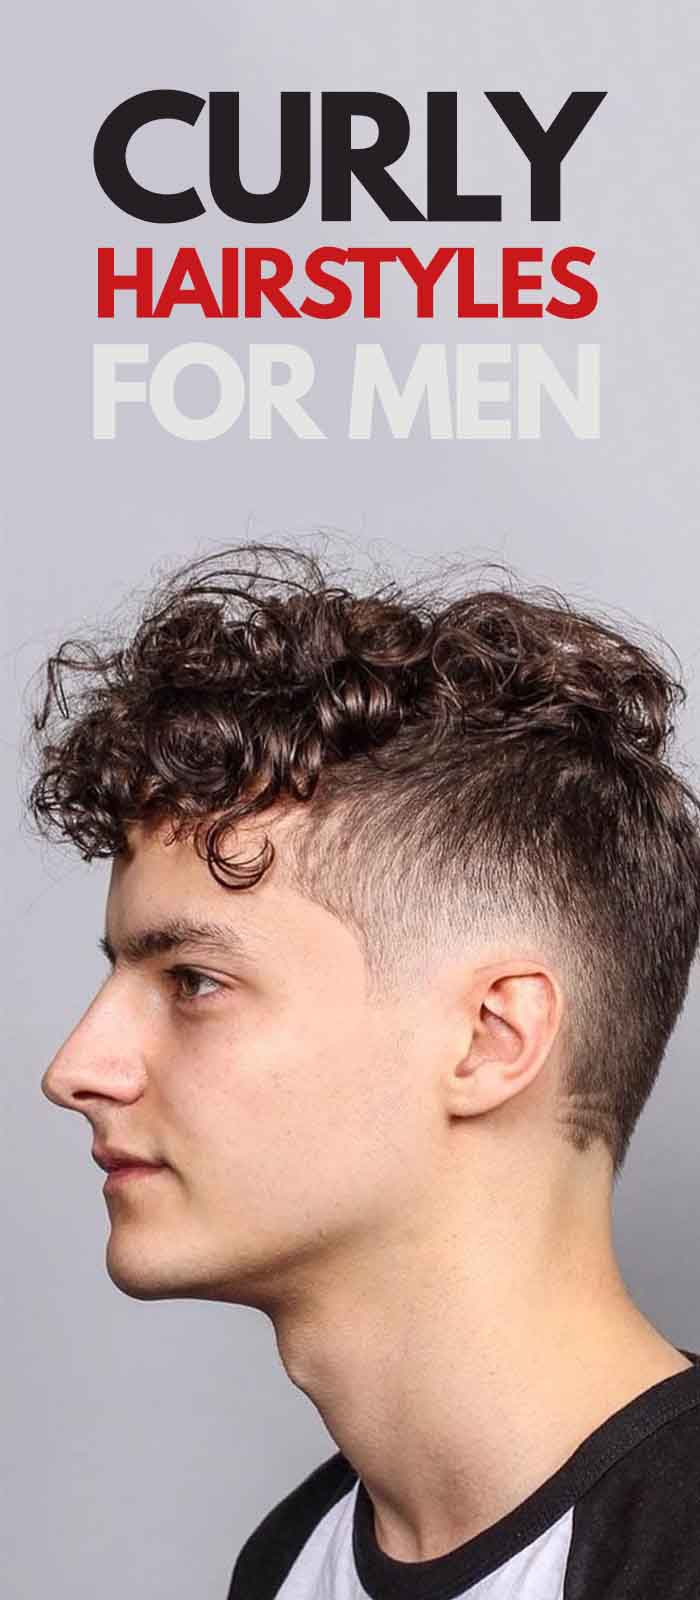 Curly Haircut For Men.